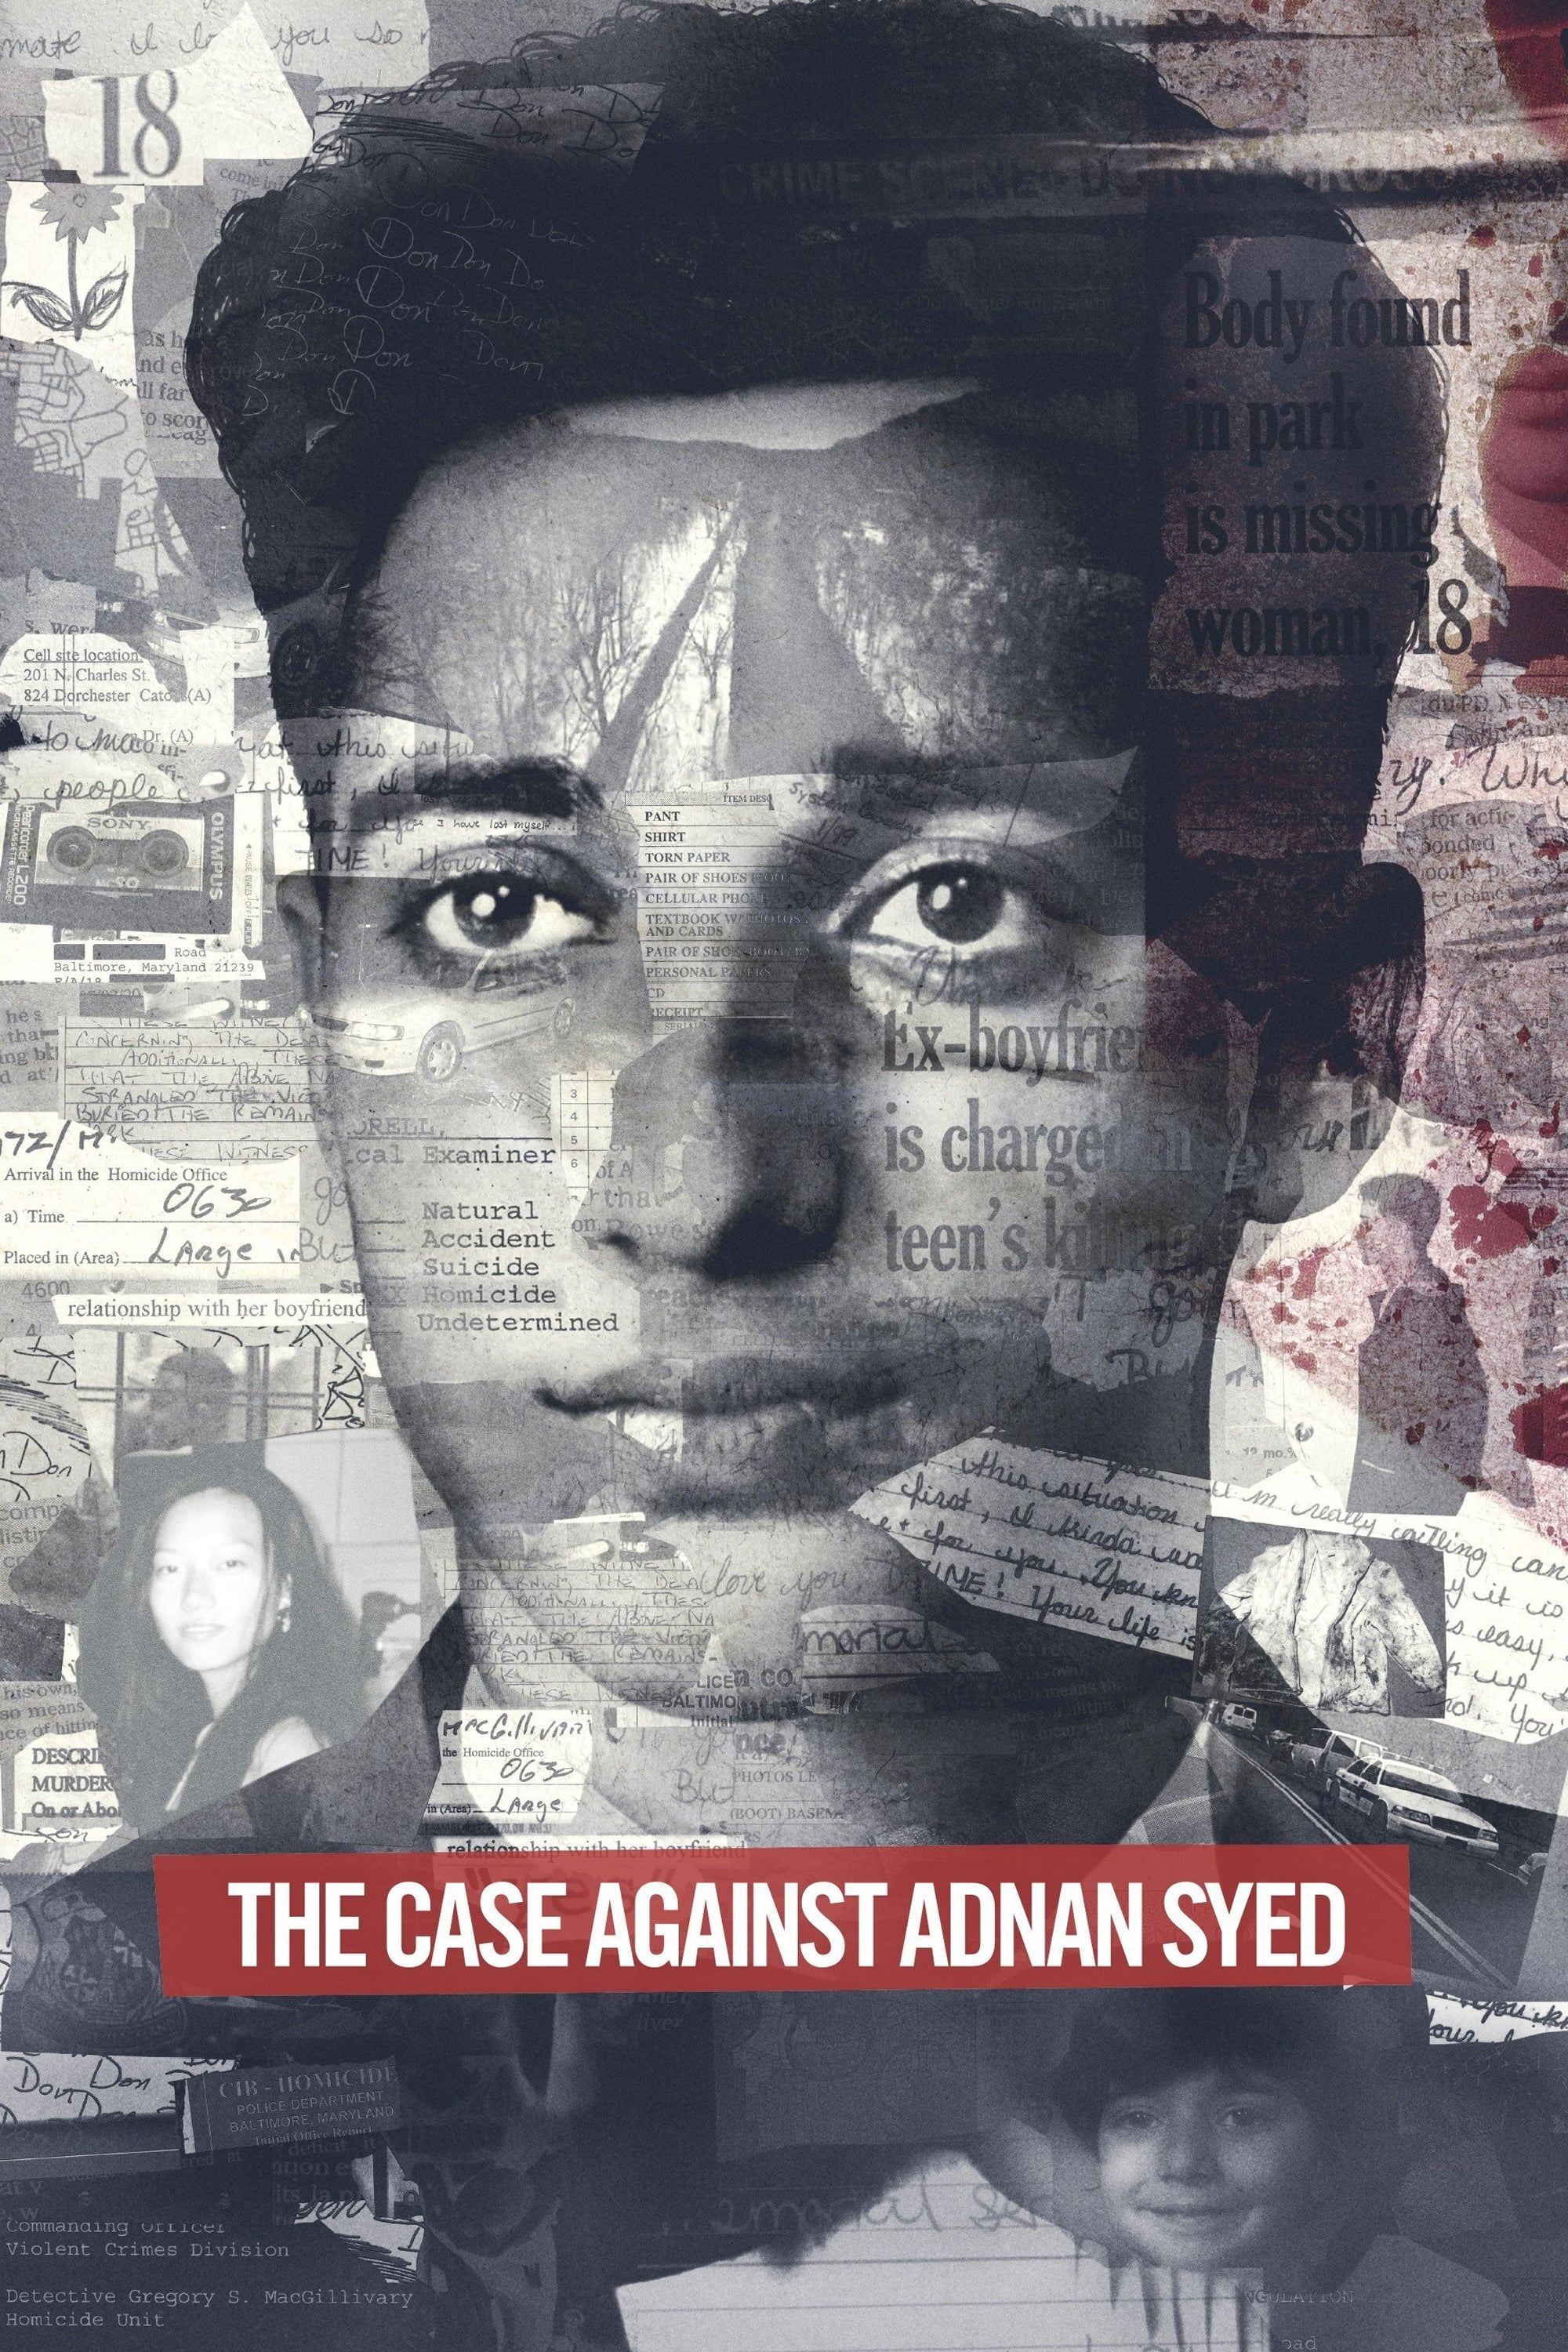 The Case Against Adnan Syed Poster